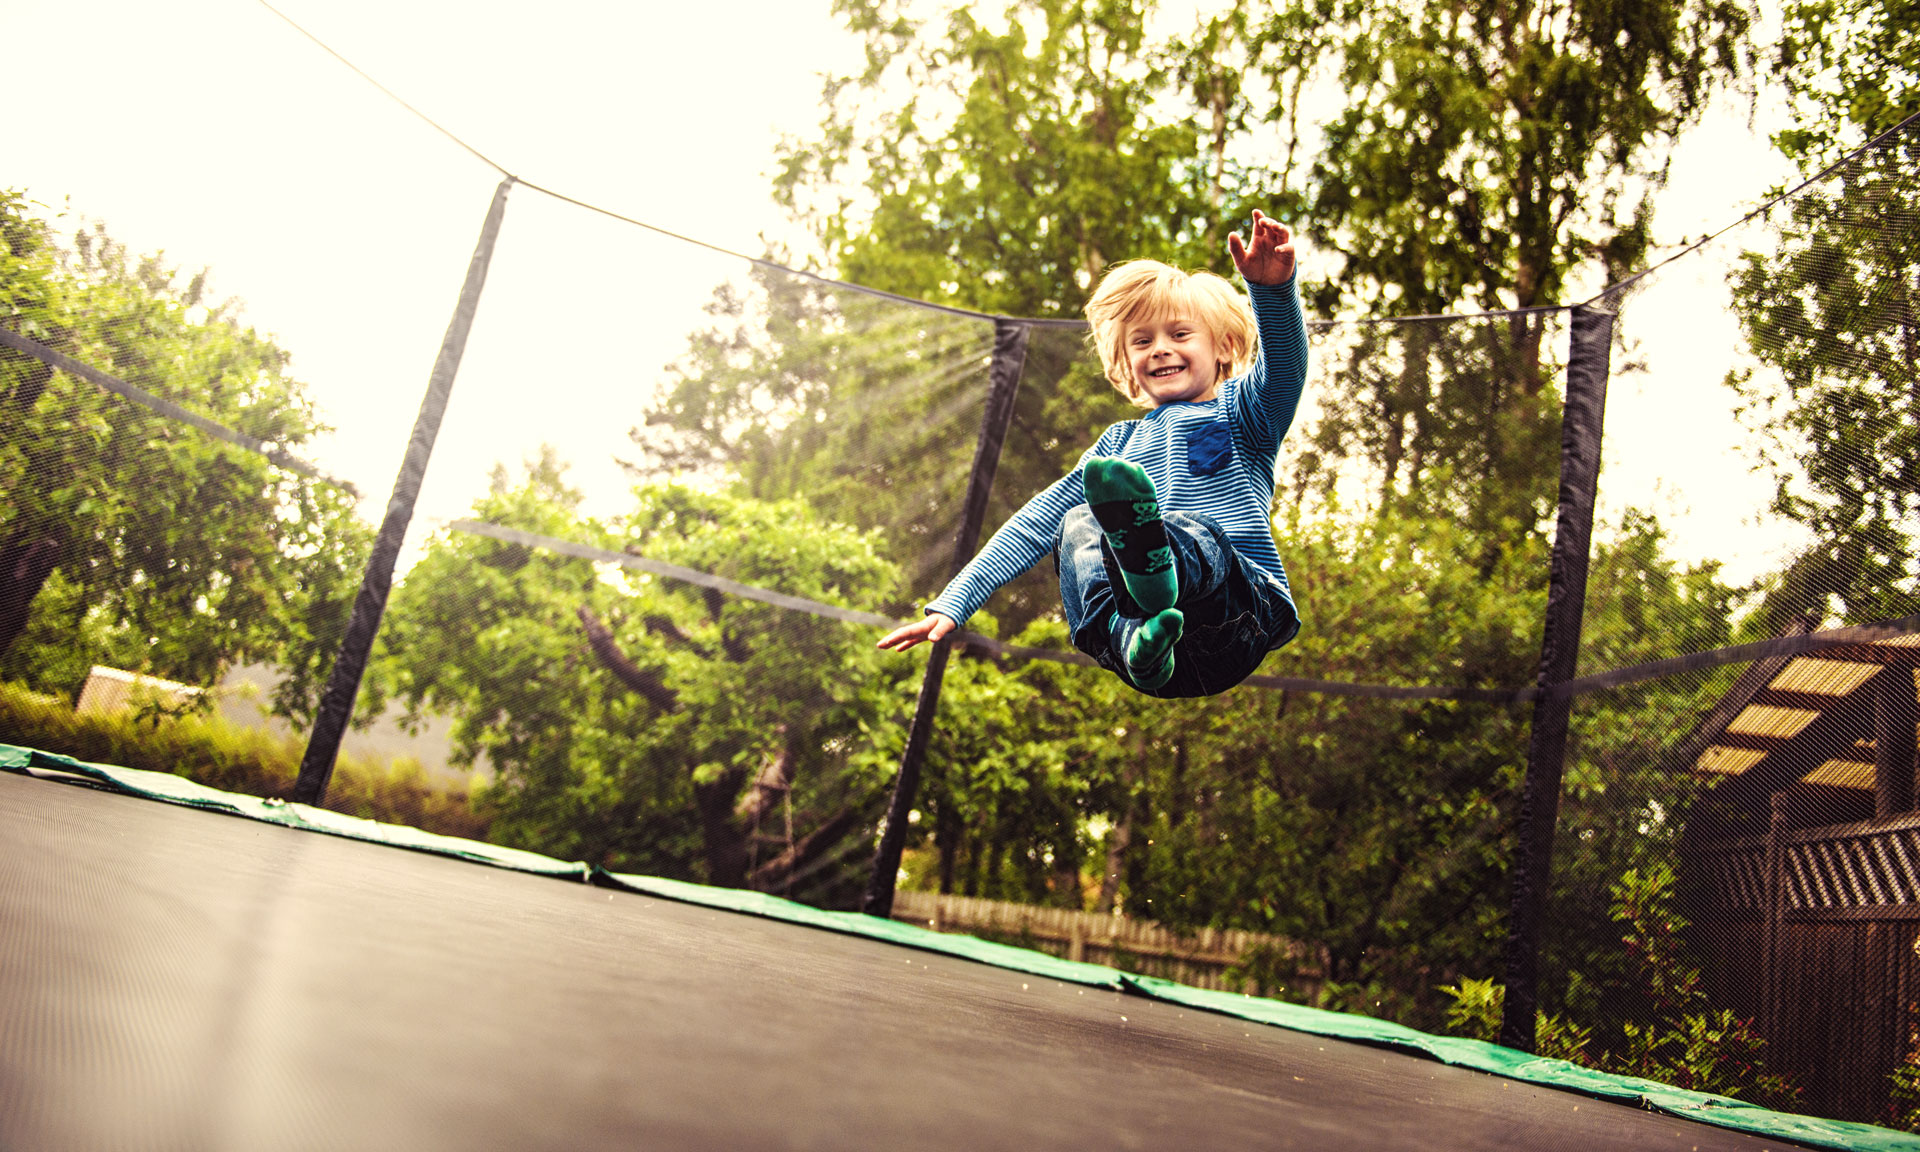 Best trampolines for summer – Which? News